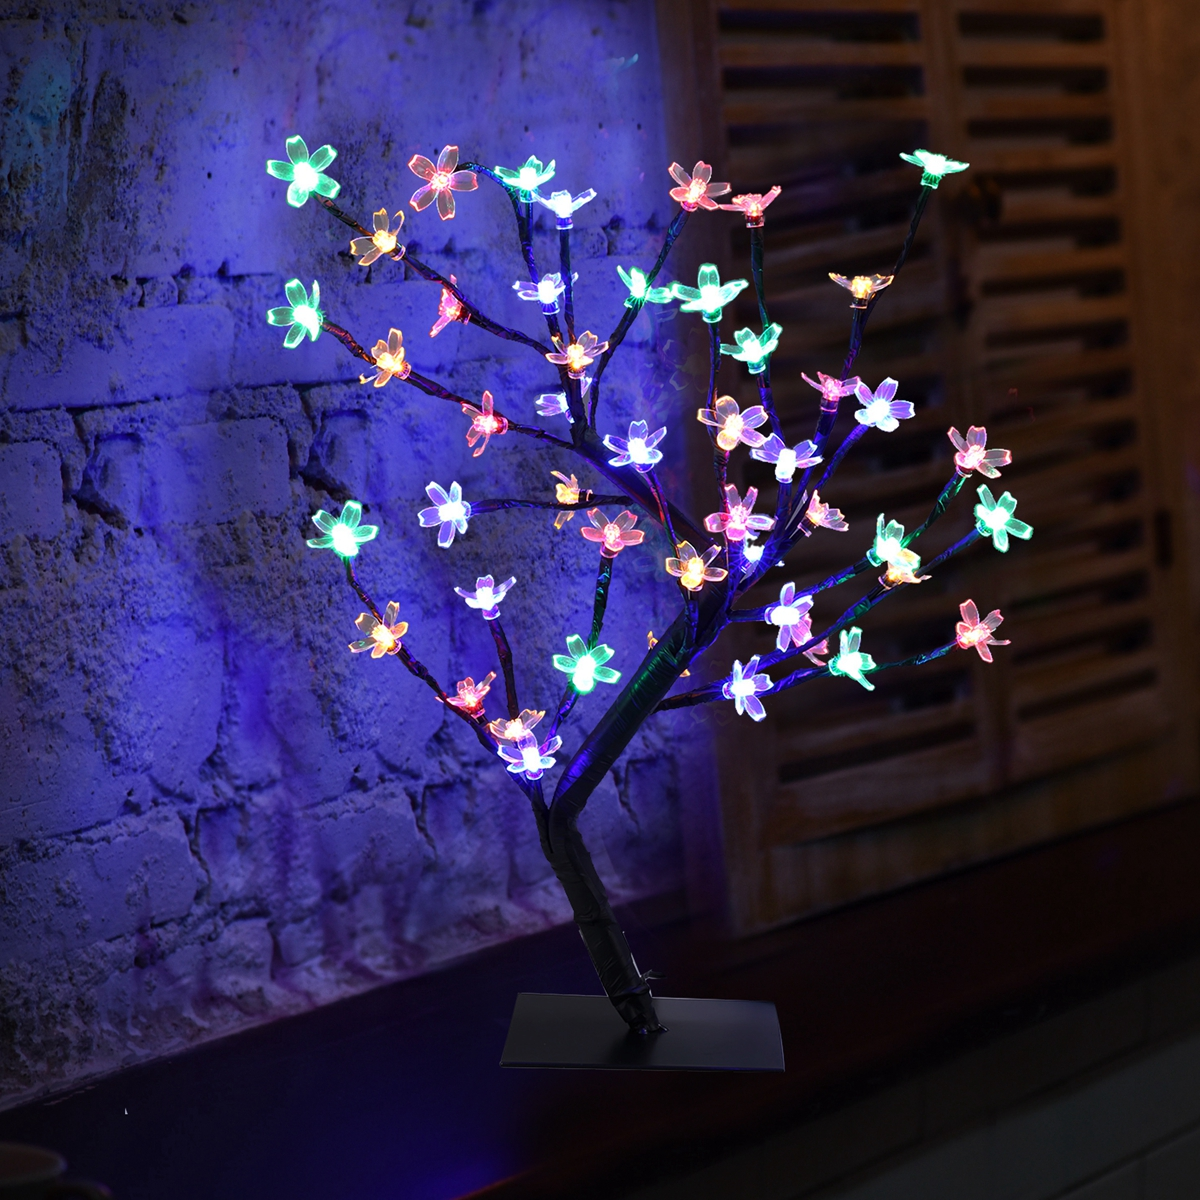 EXCELVAN 0.45M Xmas LED Decktop Twig Branch Floral Garden Multicolor Tree Cherry Blossom Light